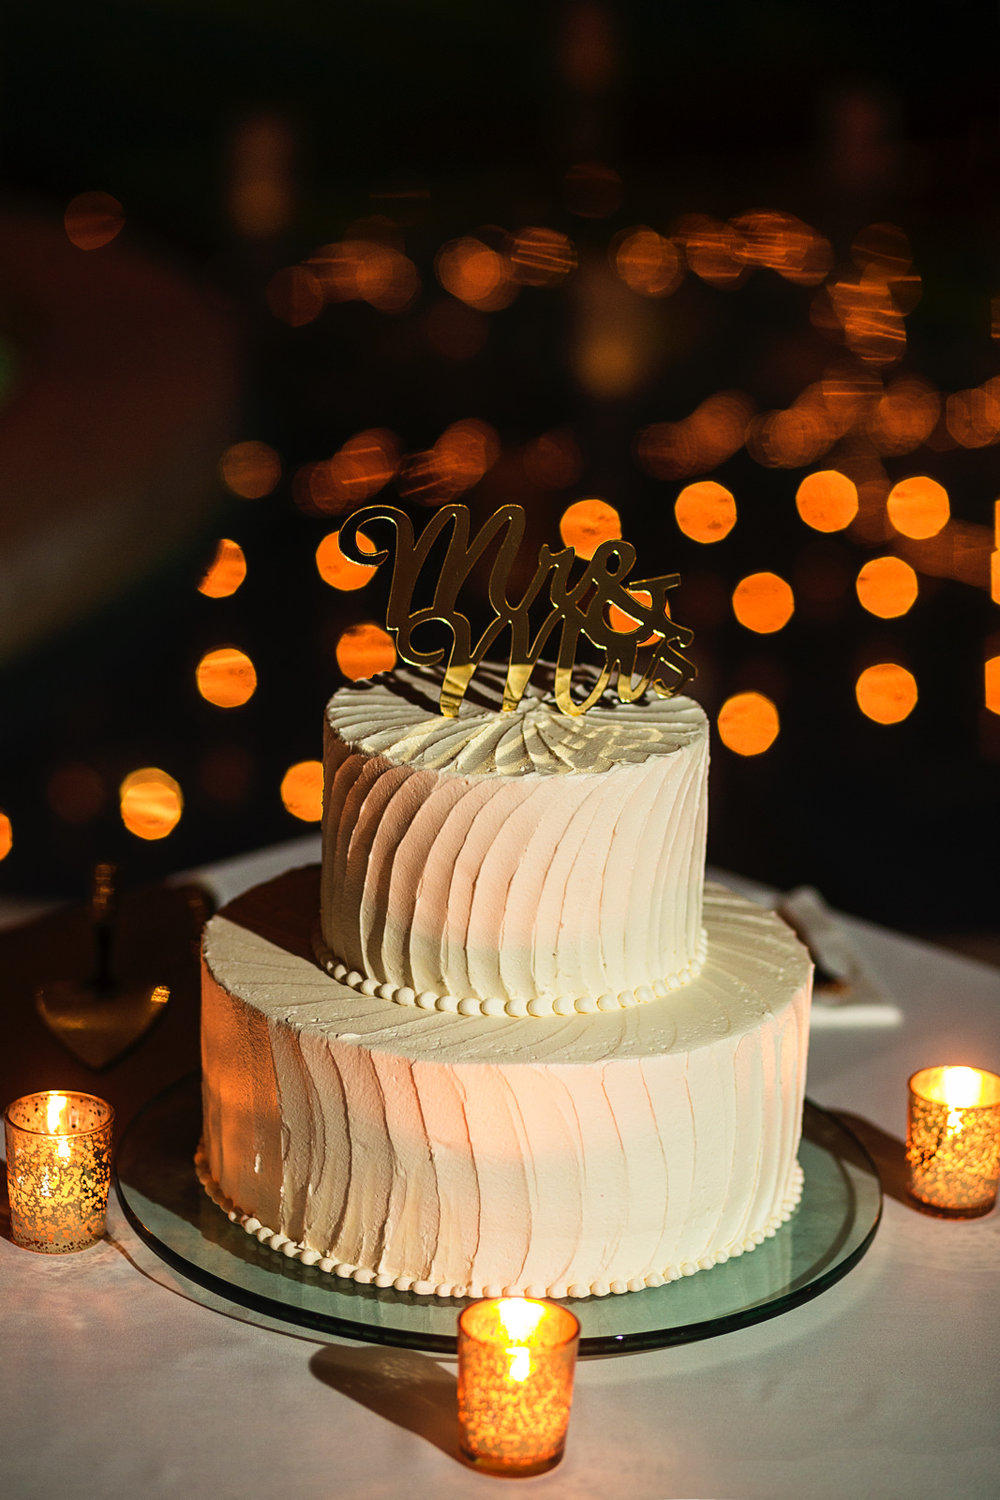 vallarta-wedding-cake-mr-mrs-topper-hotel-playa-fiesta.jpg